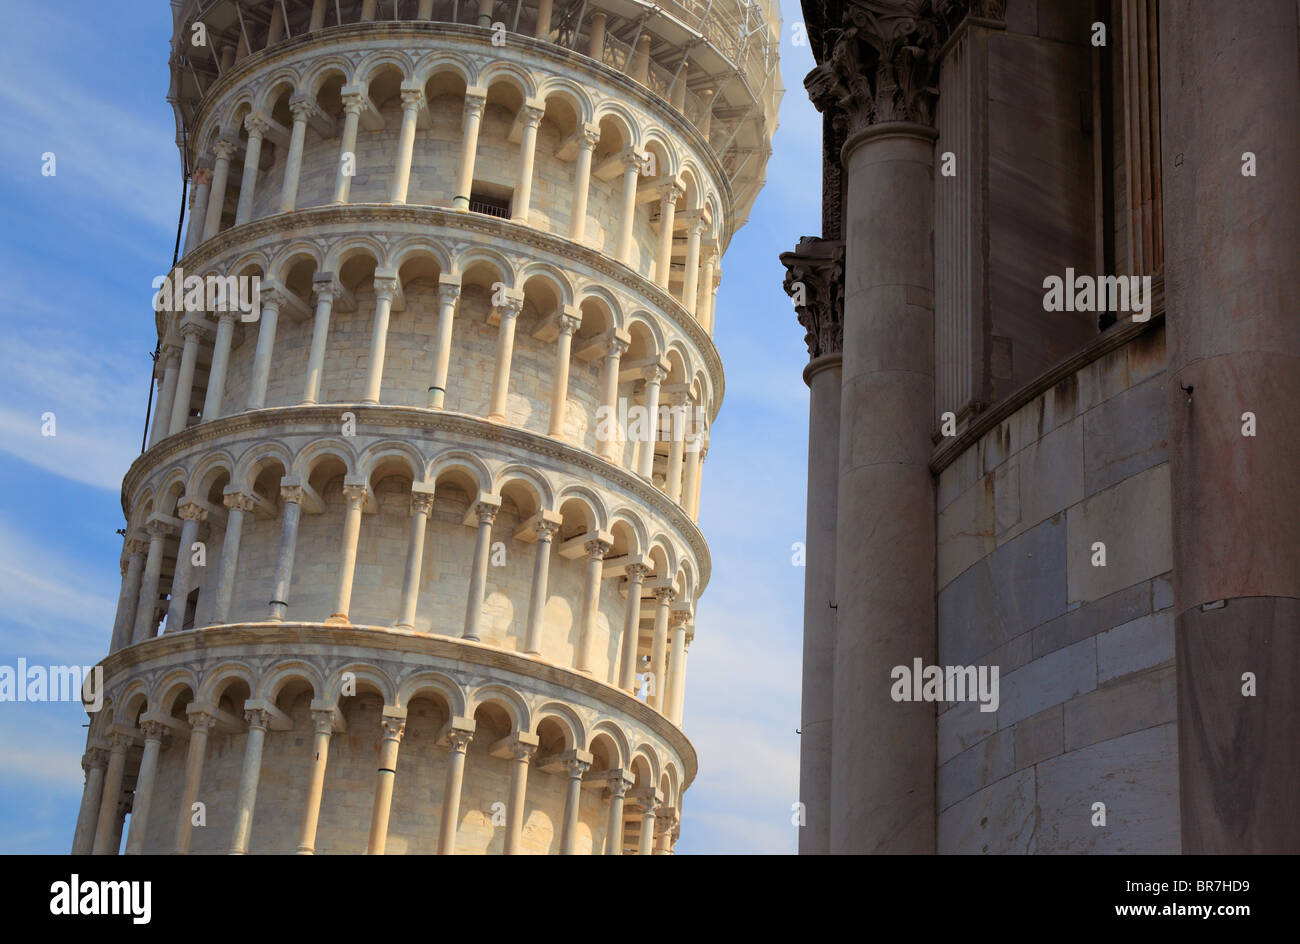 The Leaning Tower in Pisa's Square of MIracles, Italy Stock Photo